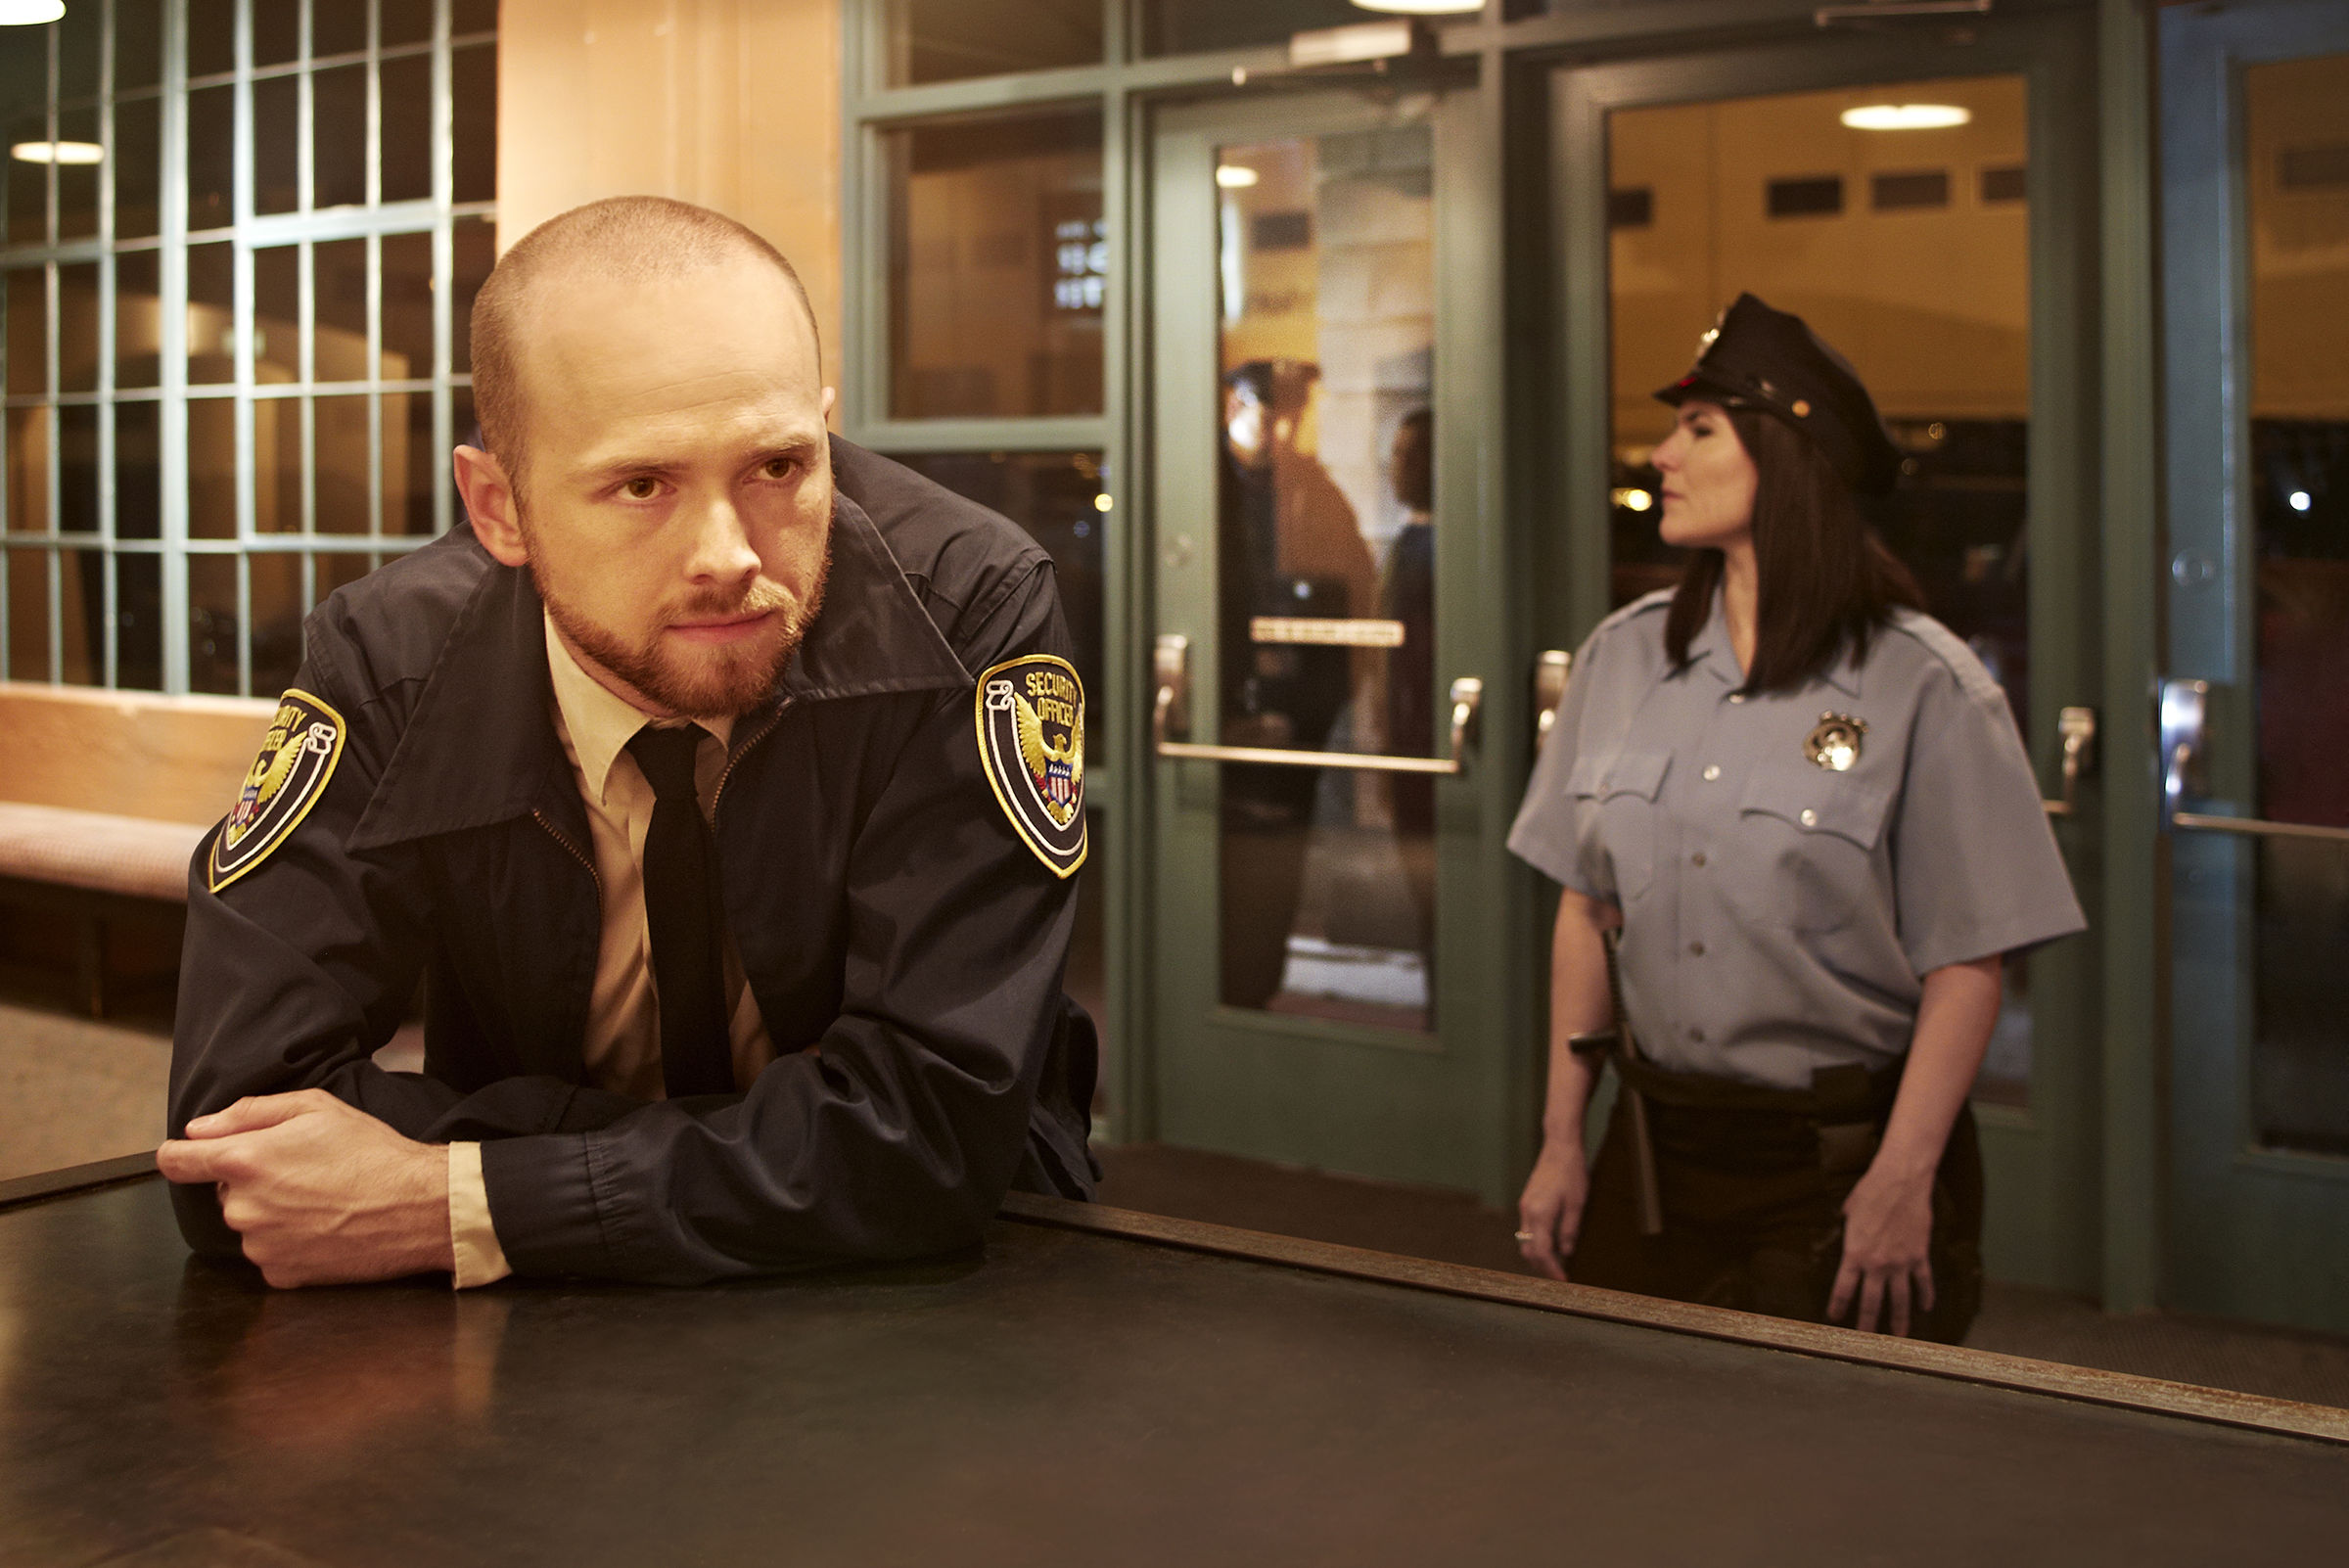 Lobby hero image no text med a93nnm